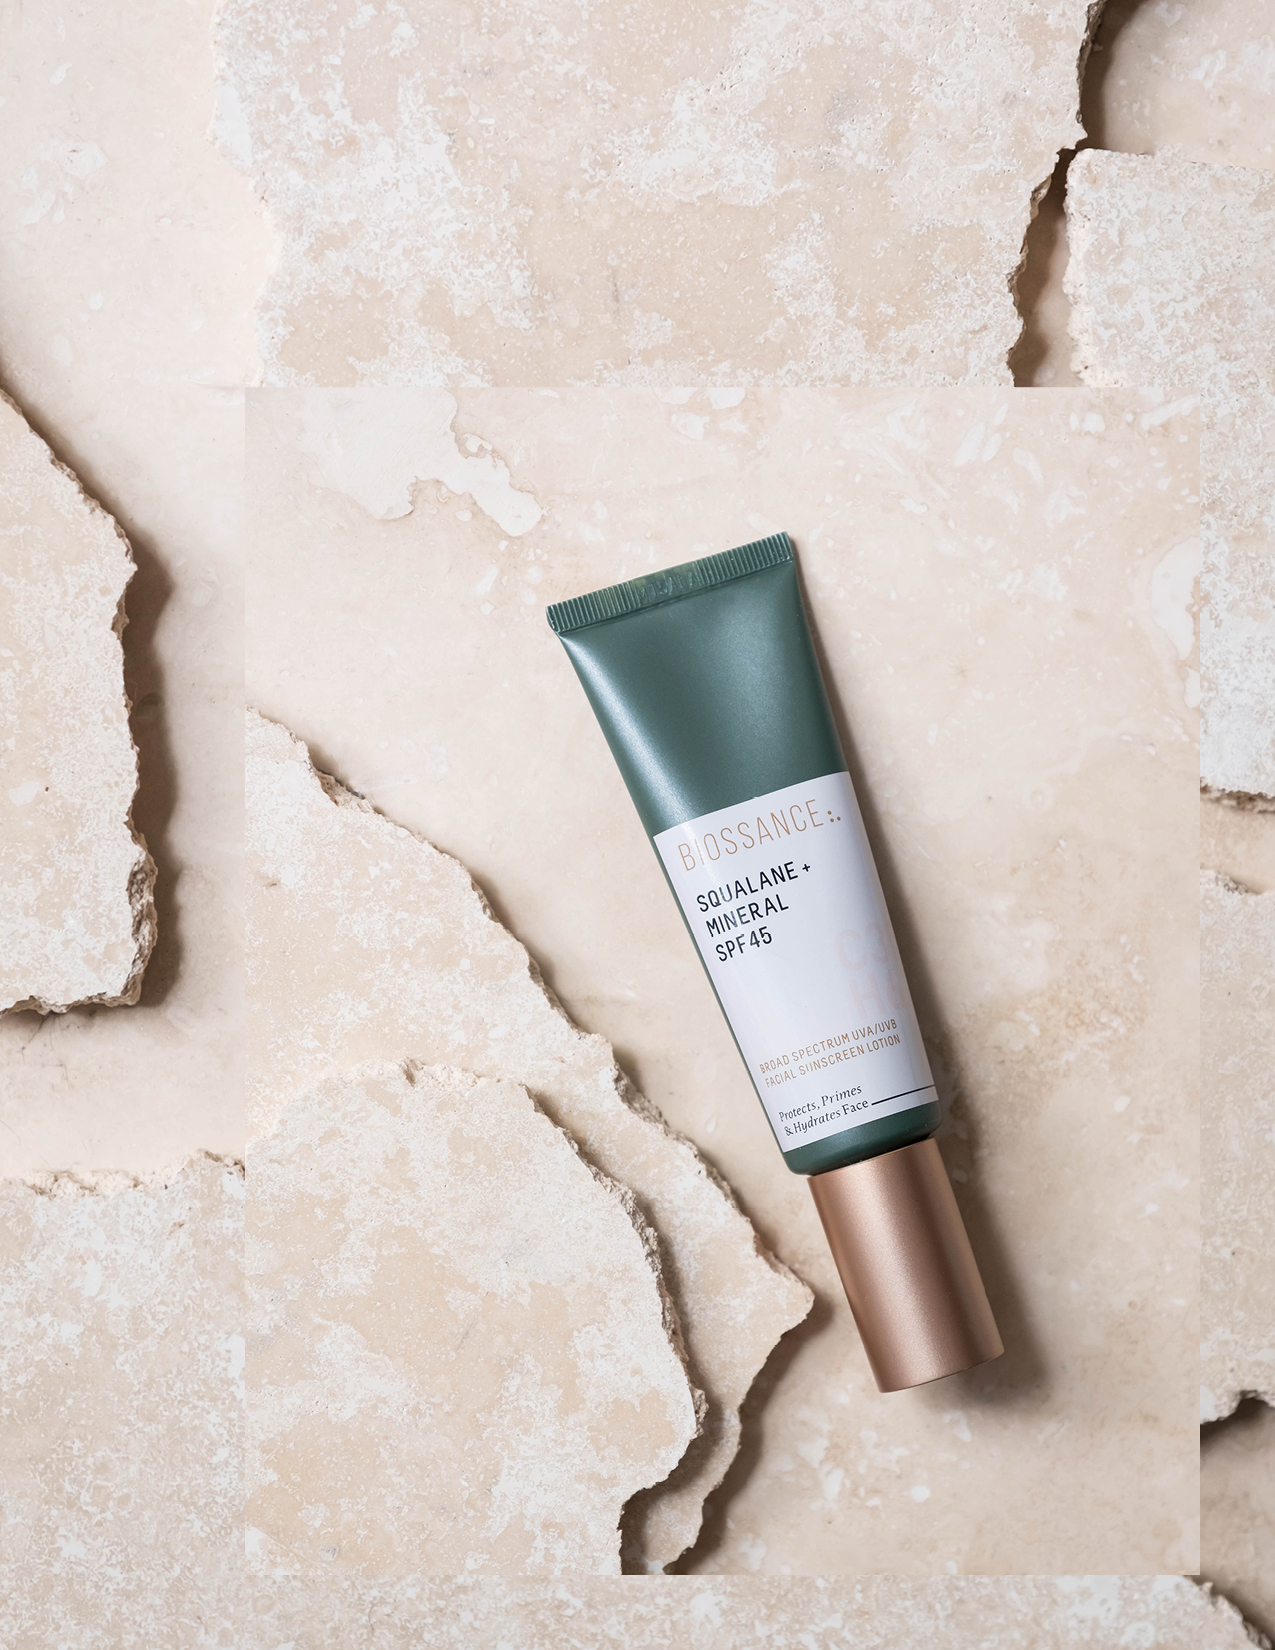 ROSE & IVY Journal Our Favorite Suncare for All Occasions Biossance Squalane + Mineral SPF 45